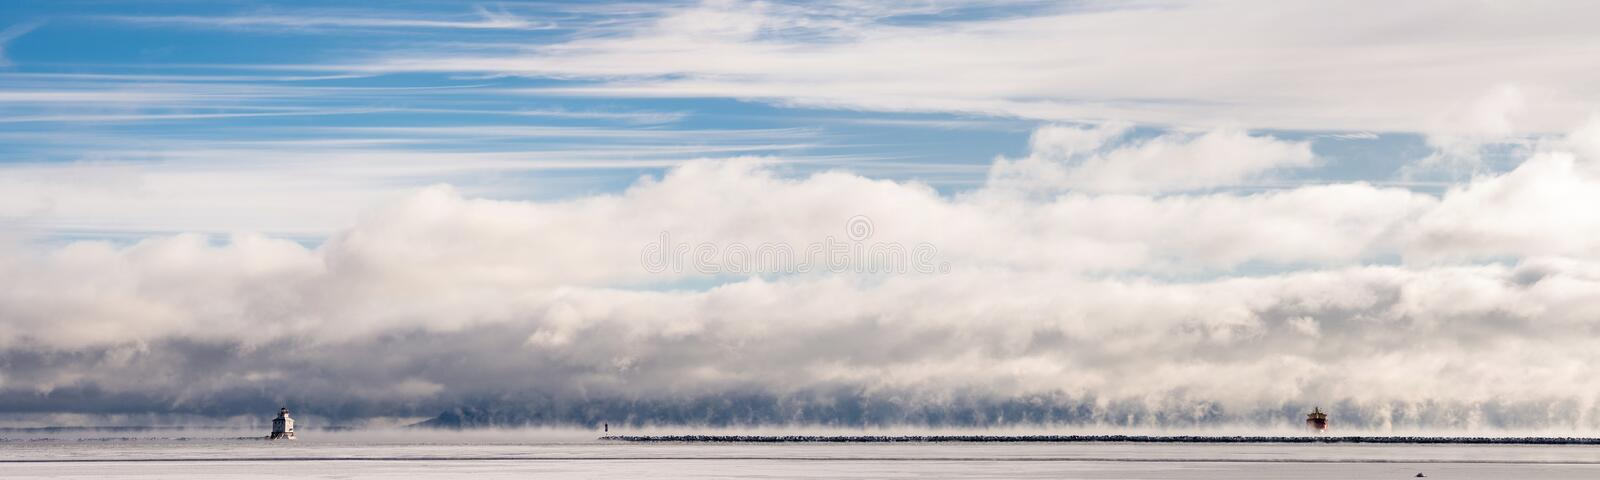 The Ghost ship in the mist stock photography